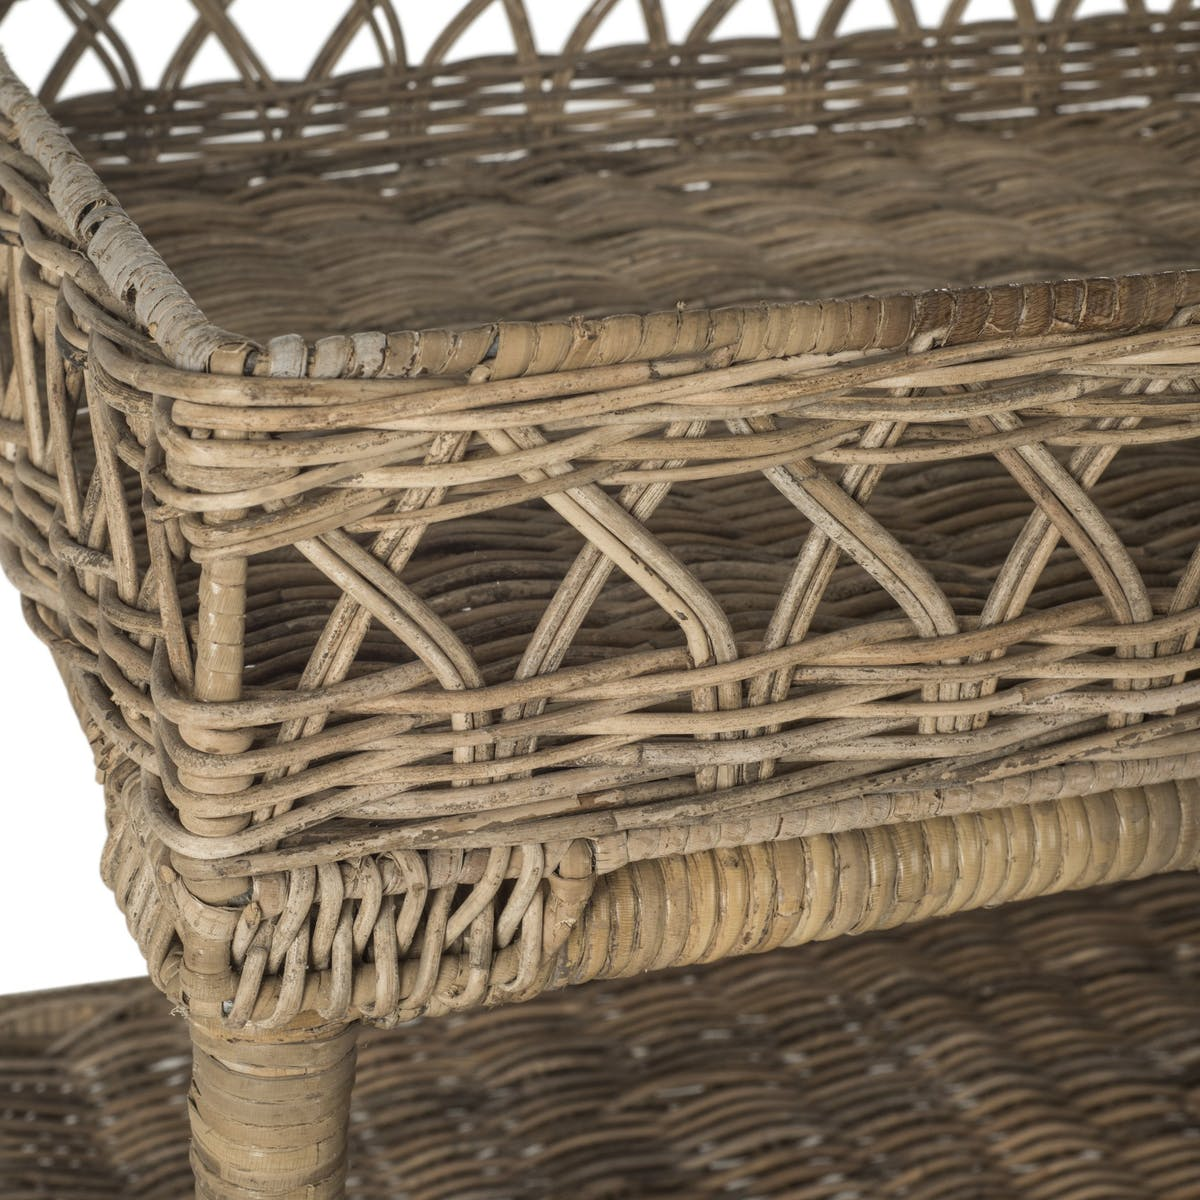 safavieh ajani wicker tier accent table modish detail storage drop leaf end with drawer side units for living room kitchen bar height bistro set industrial diy target patio and